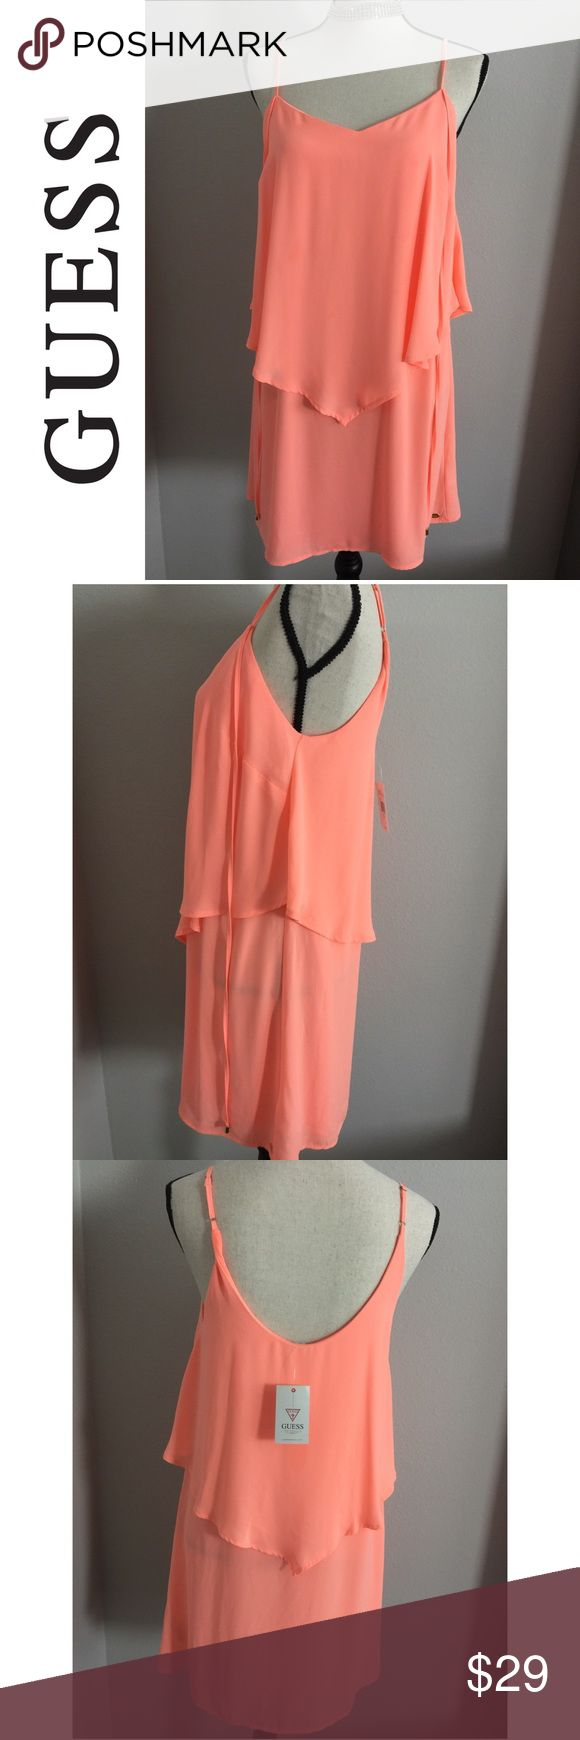 ✨Guess NWT Coral Cute Summer Dress ✨ Brand new With Tags super cute Coral Guess Dress  Size: Small  Awesome bundle deals available !  Fast 24 hour shipping Smoke Free Pet Free Home Guess Dresses Midi